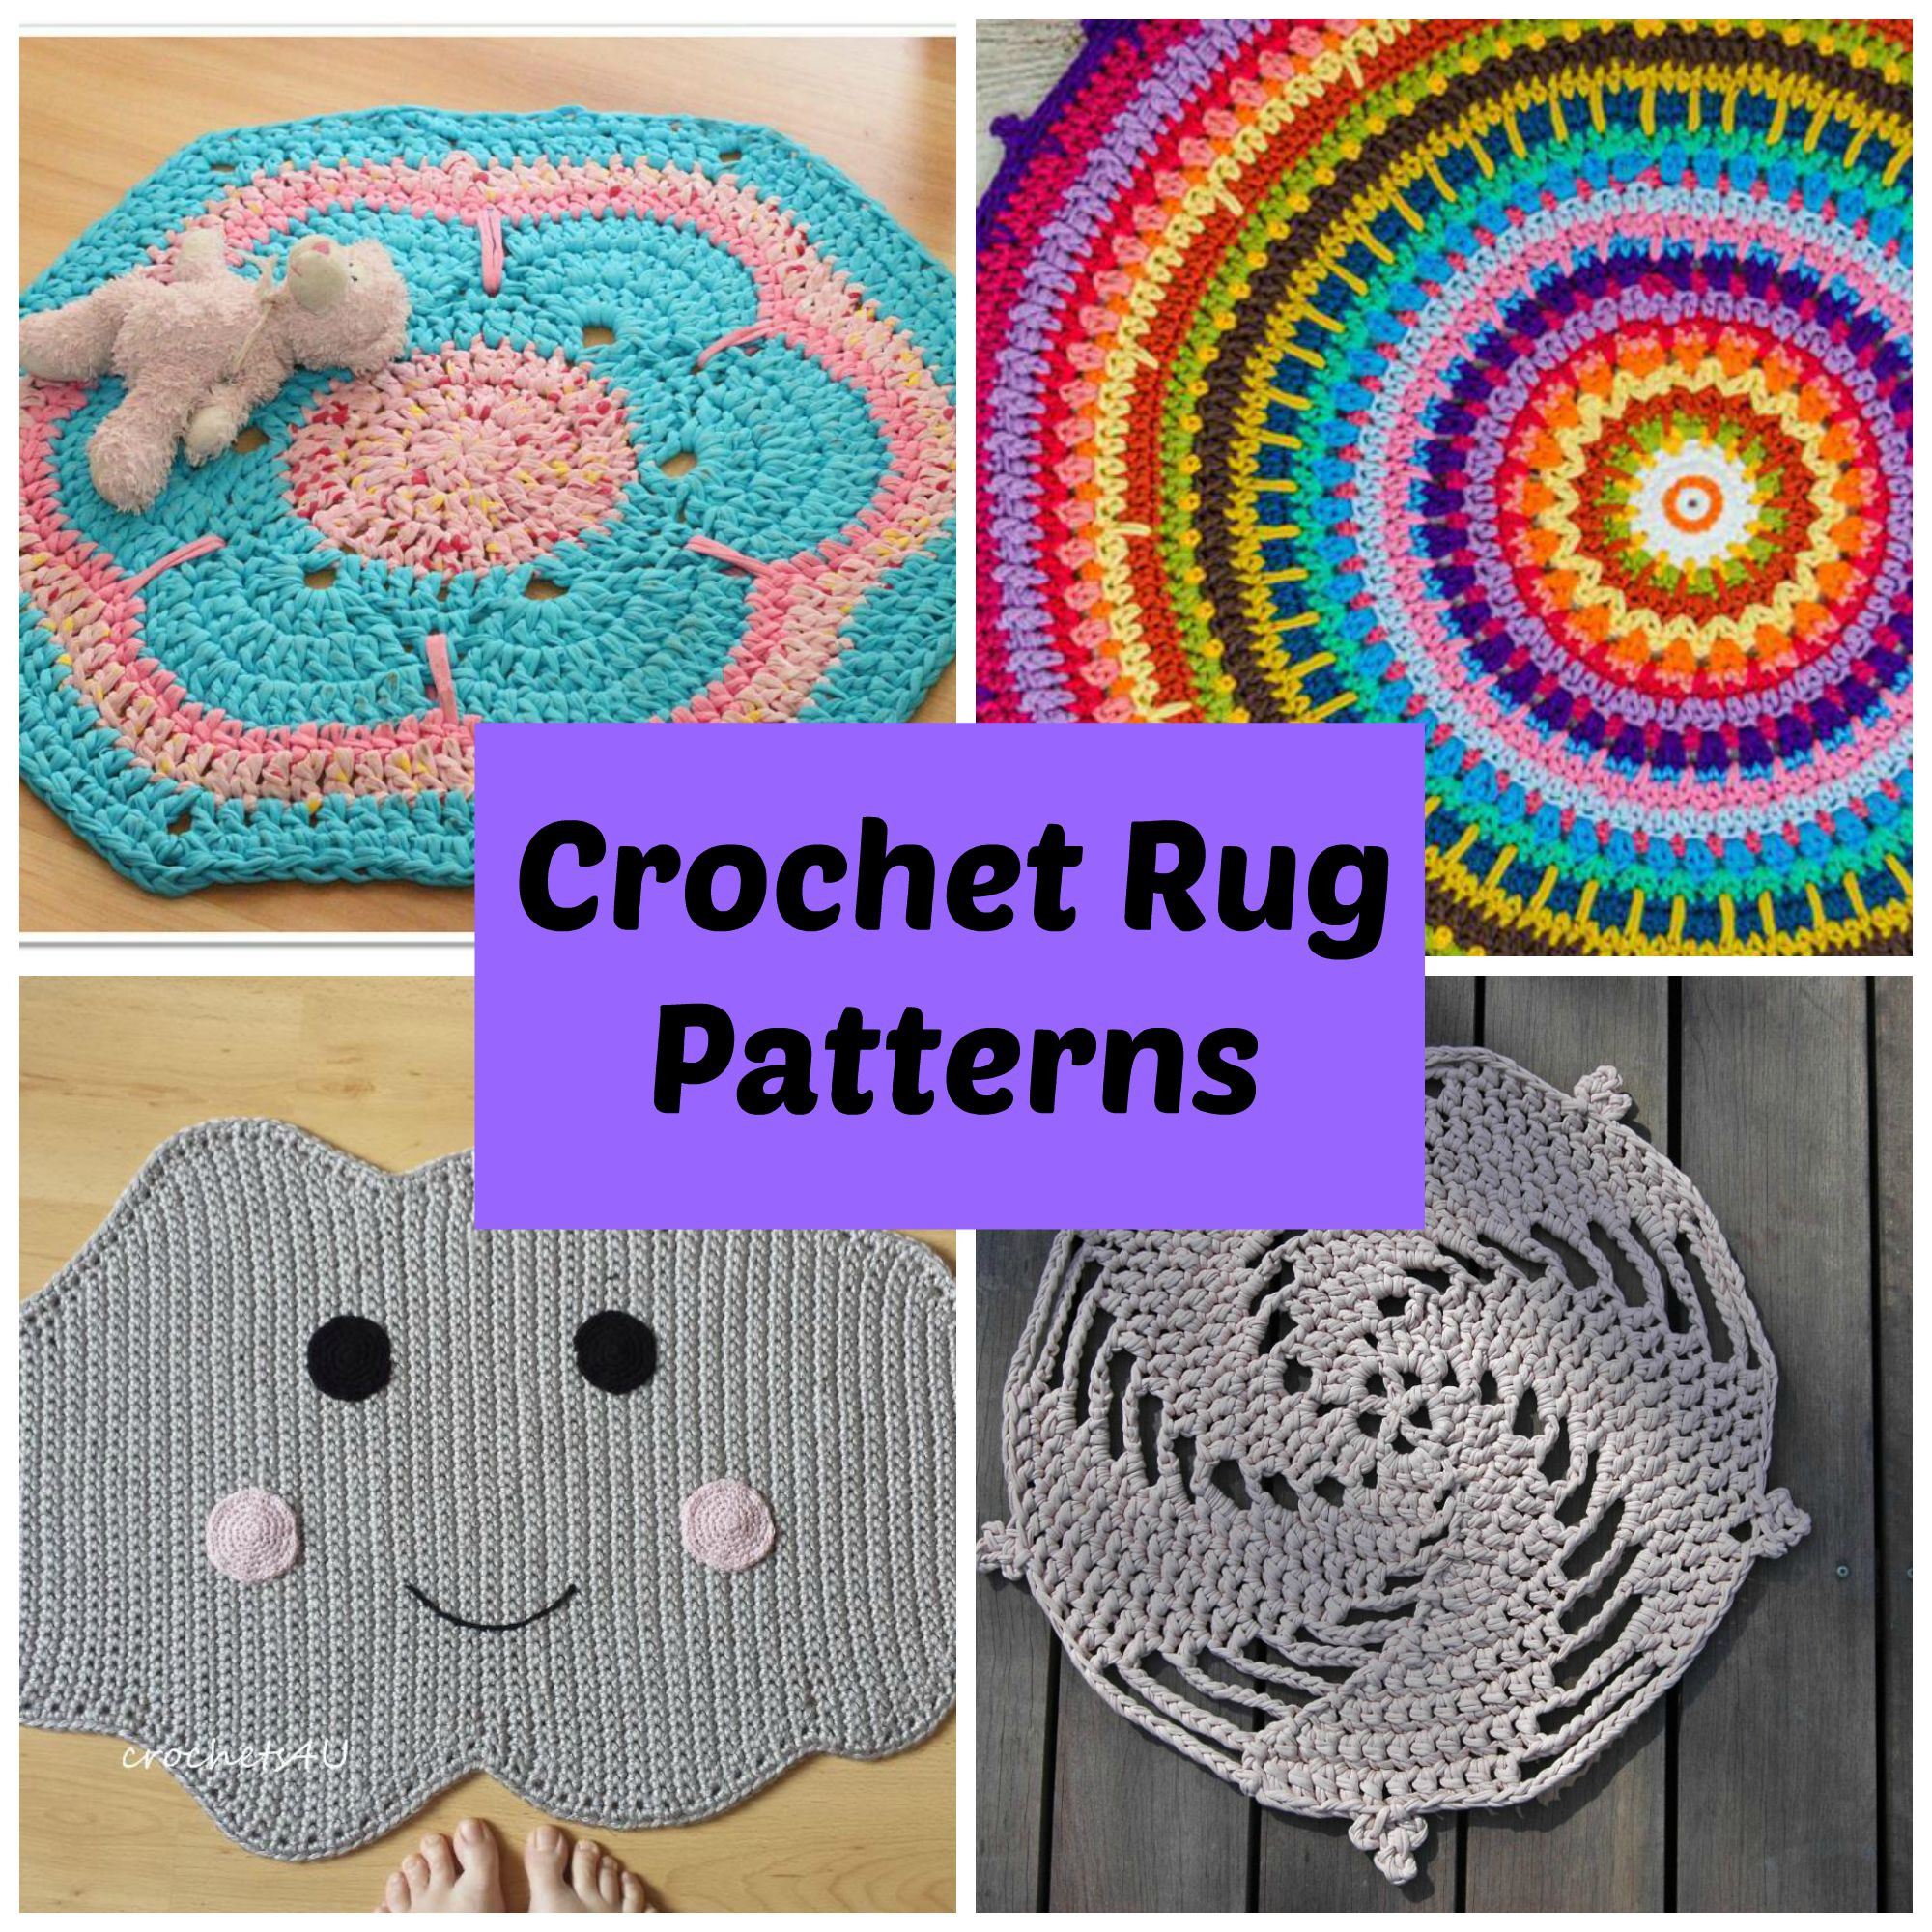 Luxury Crochet Rug Patterns for A Handmade Home Free Crochet Rug Patterns Of Delightful 48 Pics Free Crochet Rug Patterns